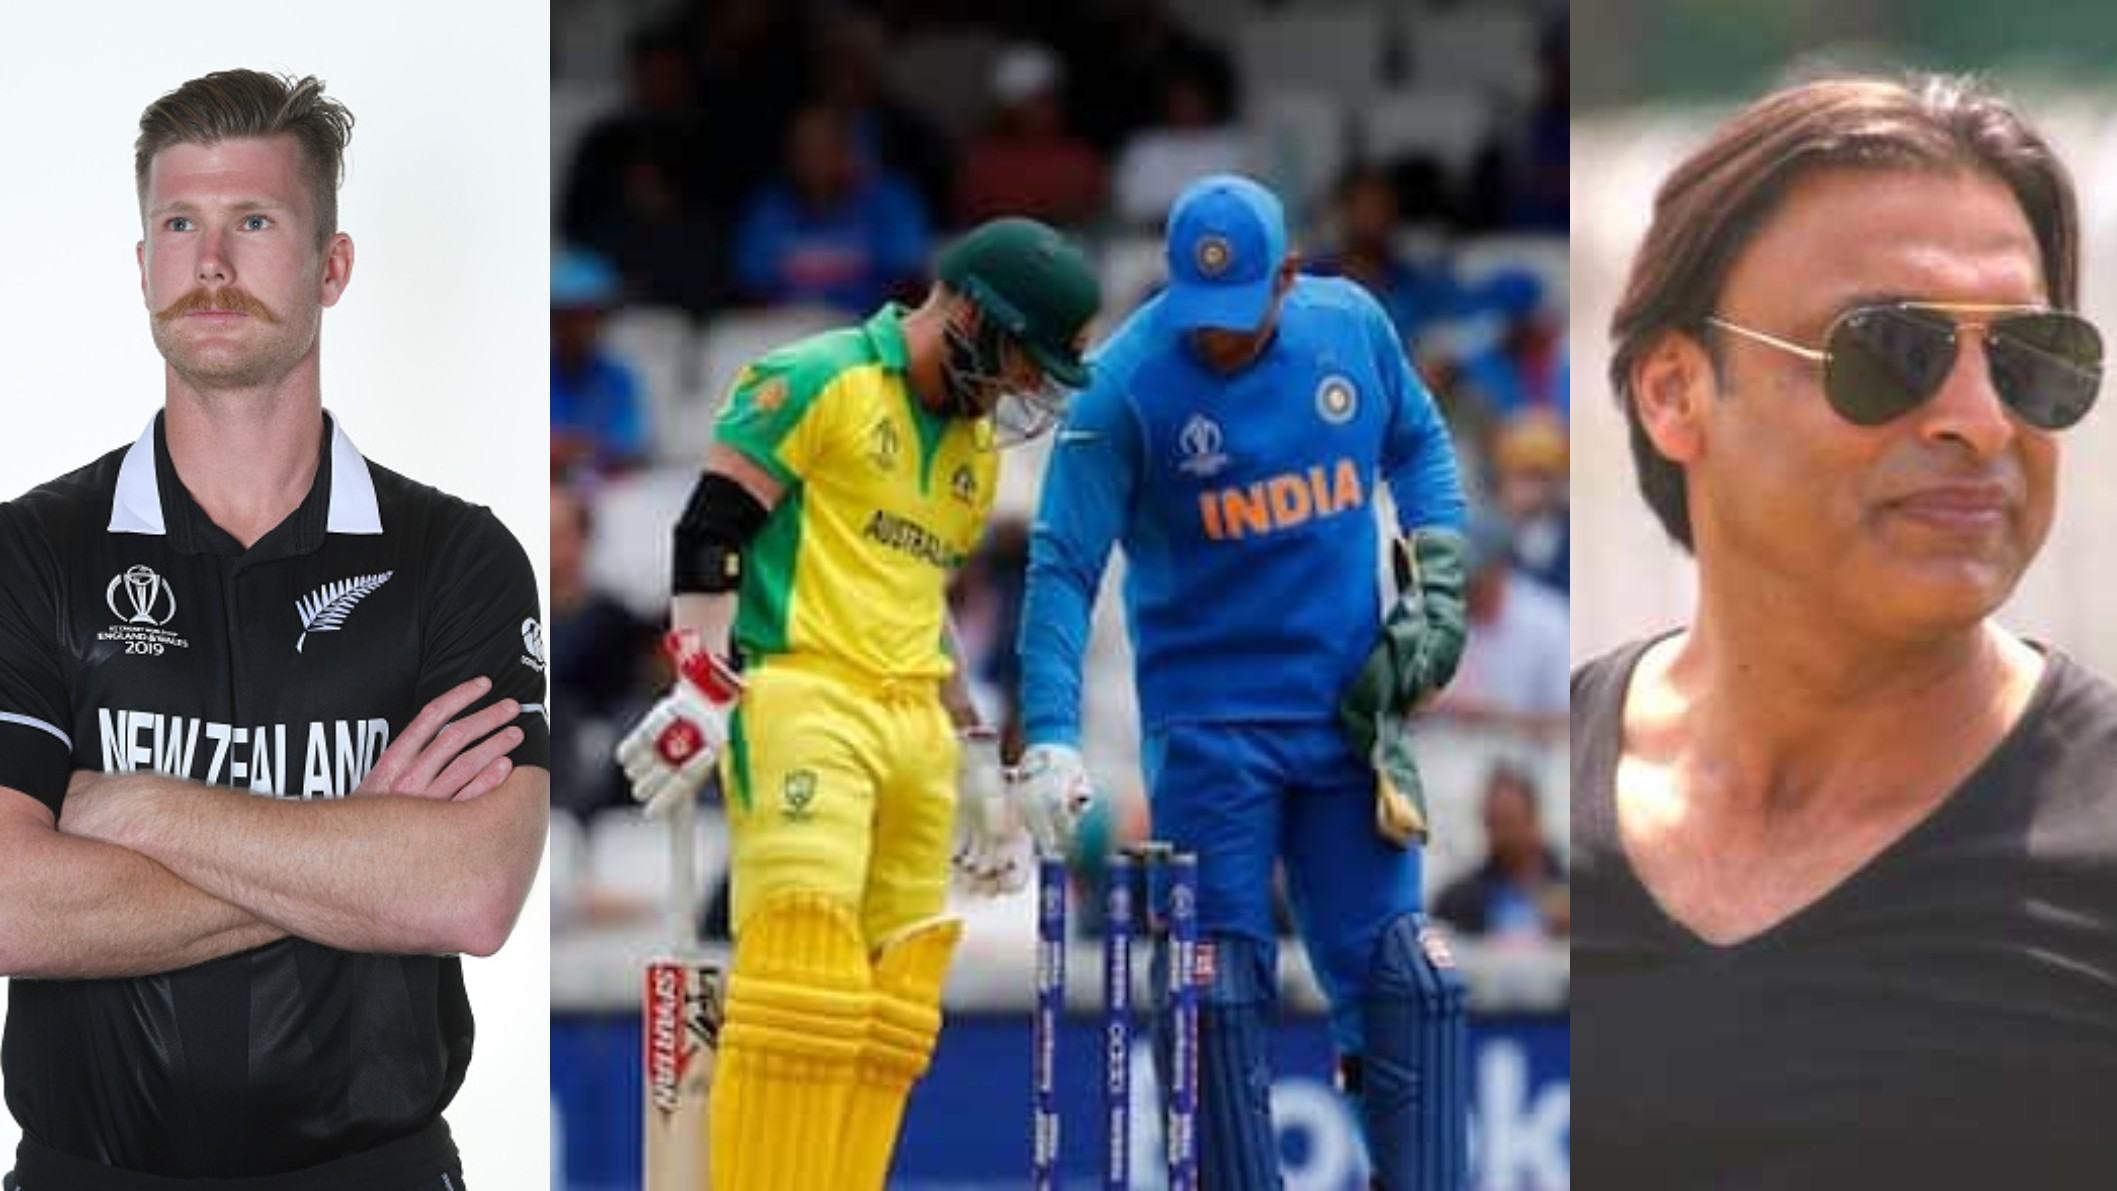 CWC 2019: 'What's up with zing bails?' asks cricket fraternity as Warner gets a life against Bumrah